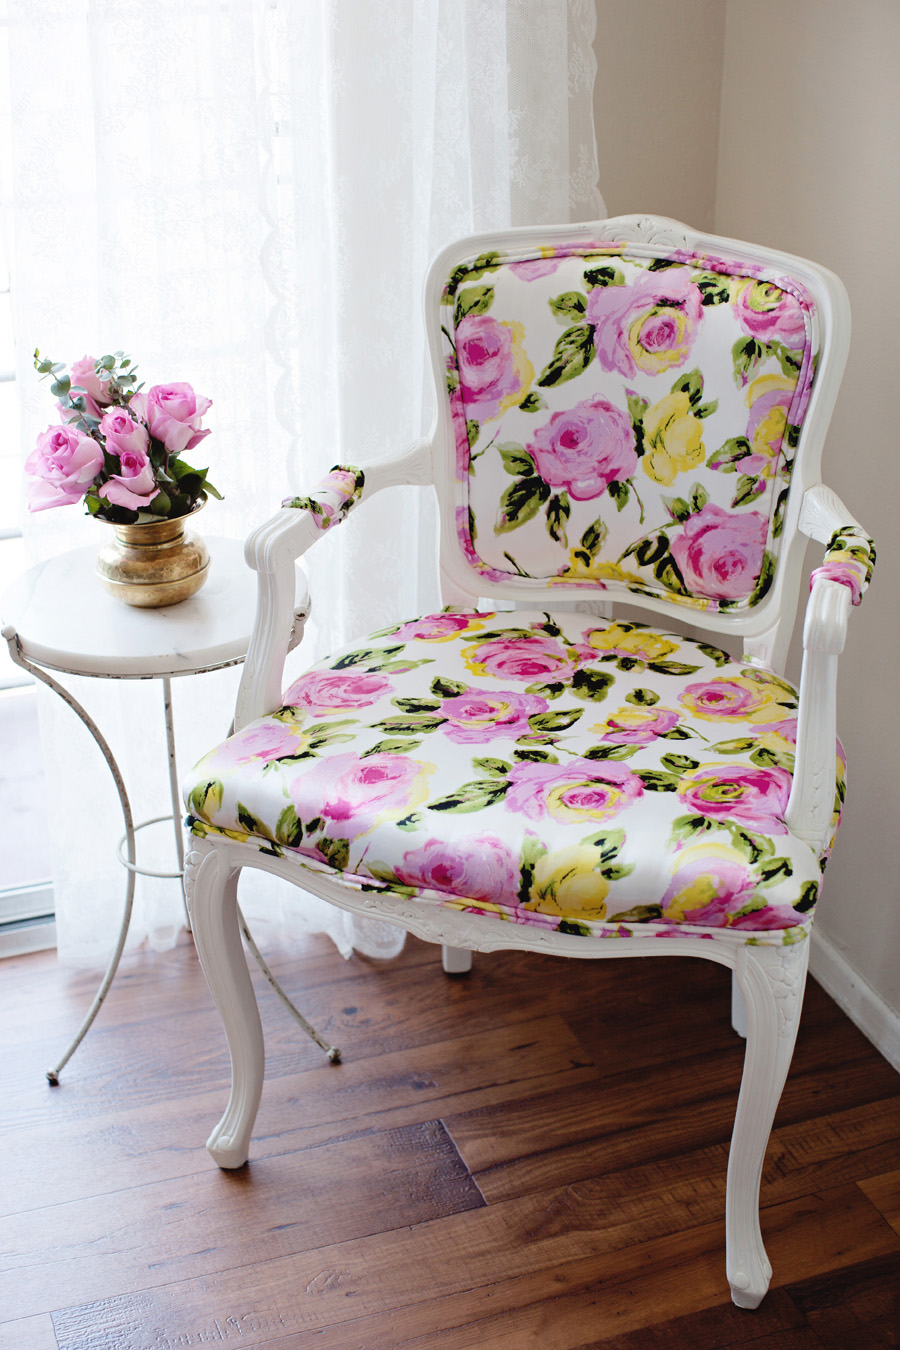 DIY Floral Chair Upholstery ...